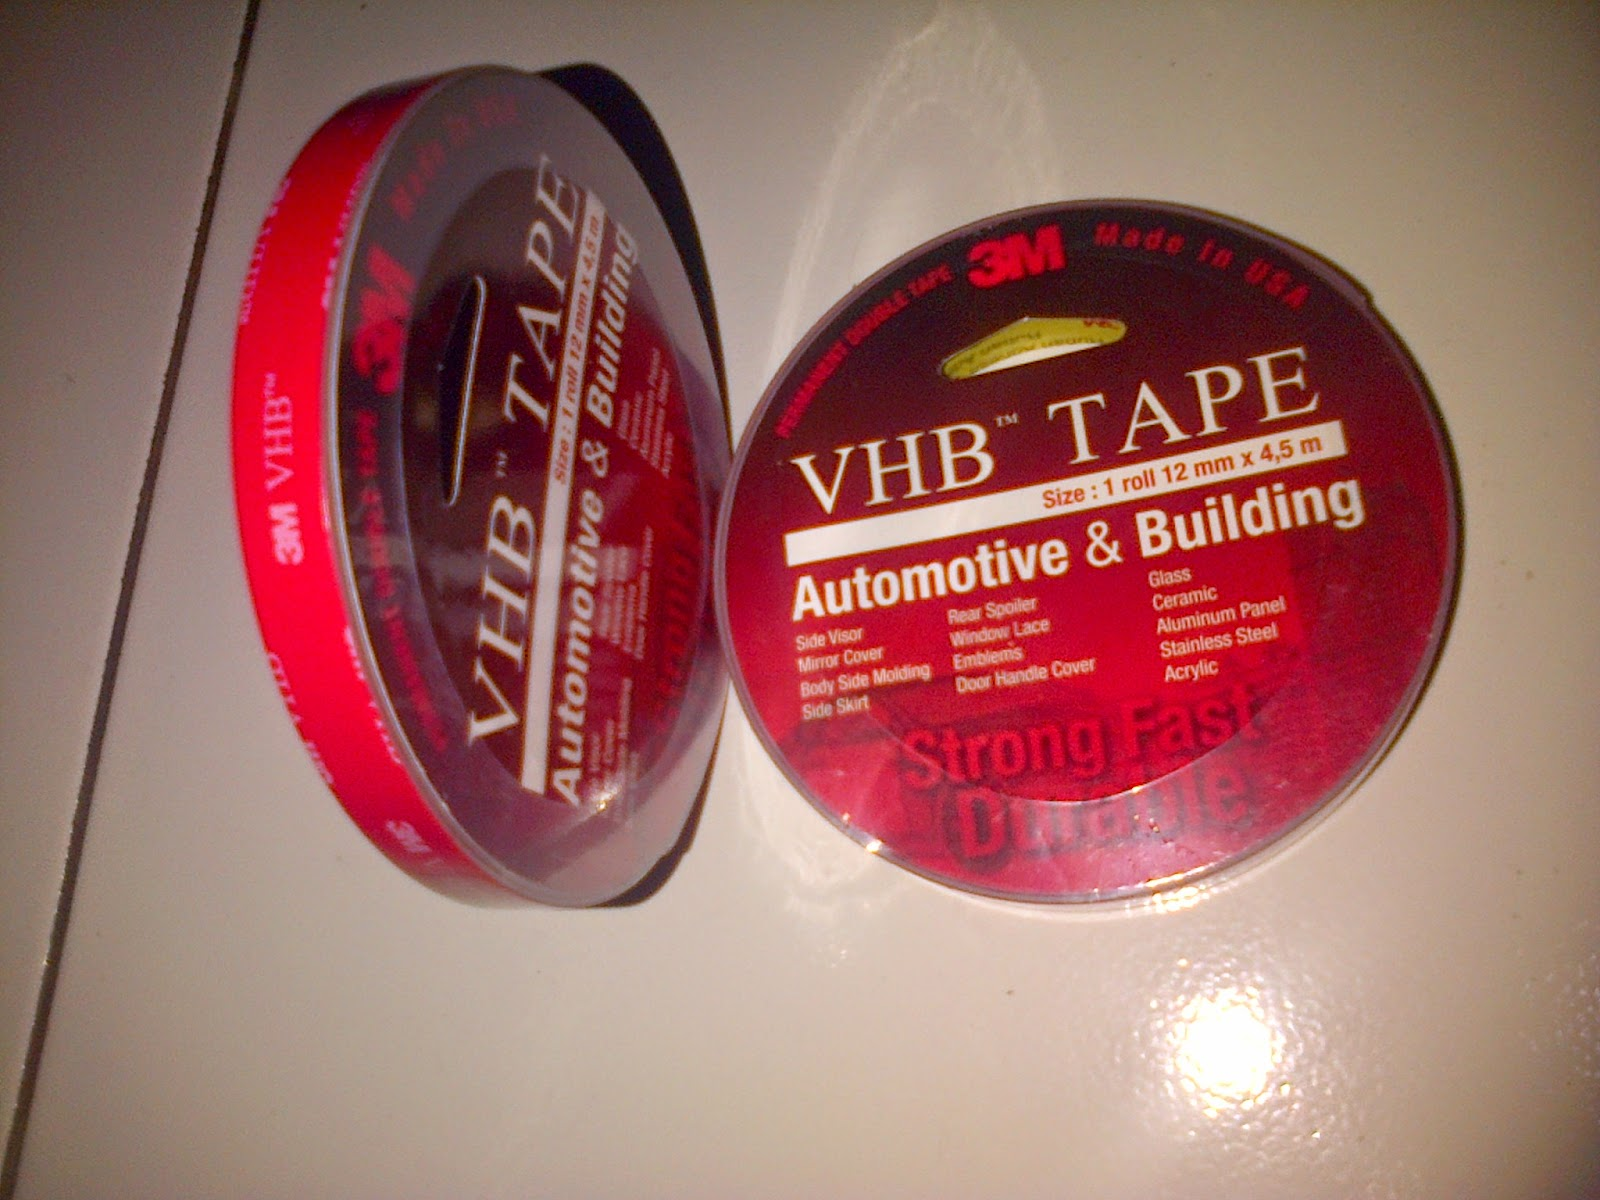 Double Tape VHB 3M